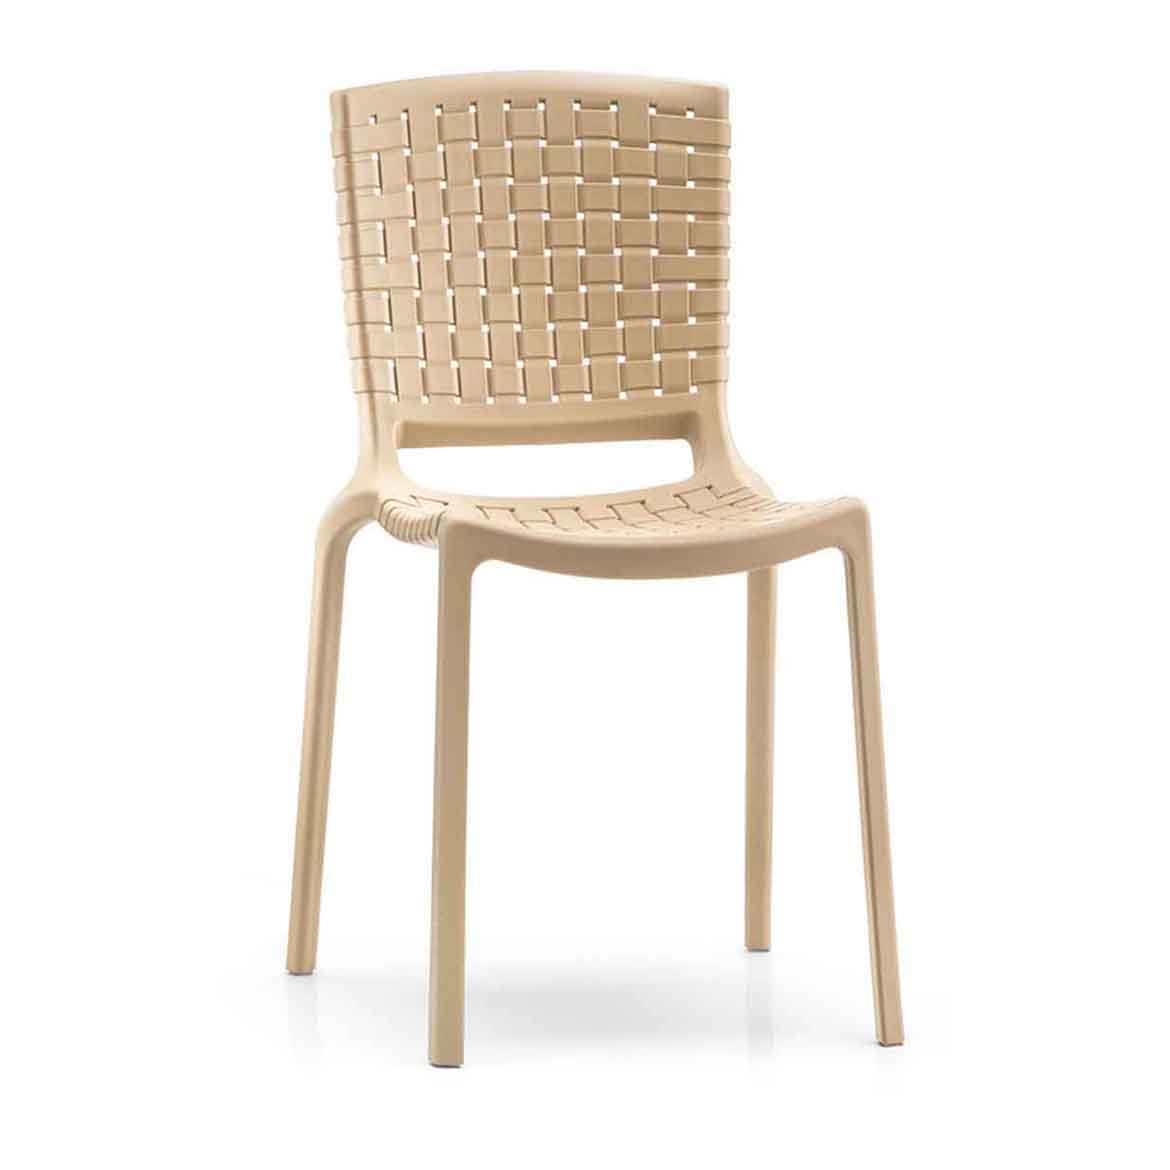 Polypropylene frame, available in 6 colours. Material of the seat is the same as structure.